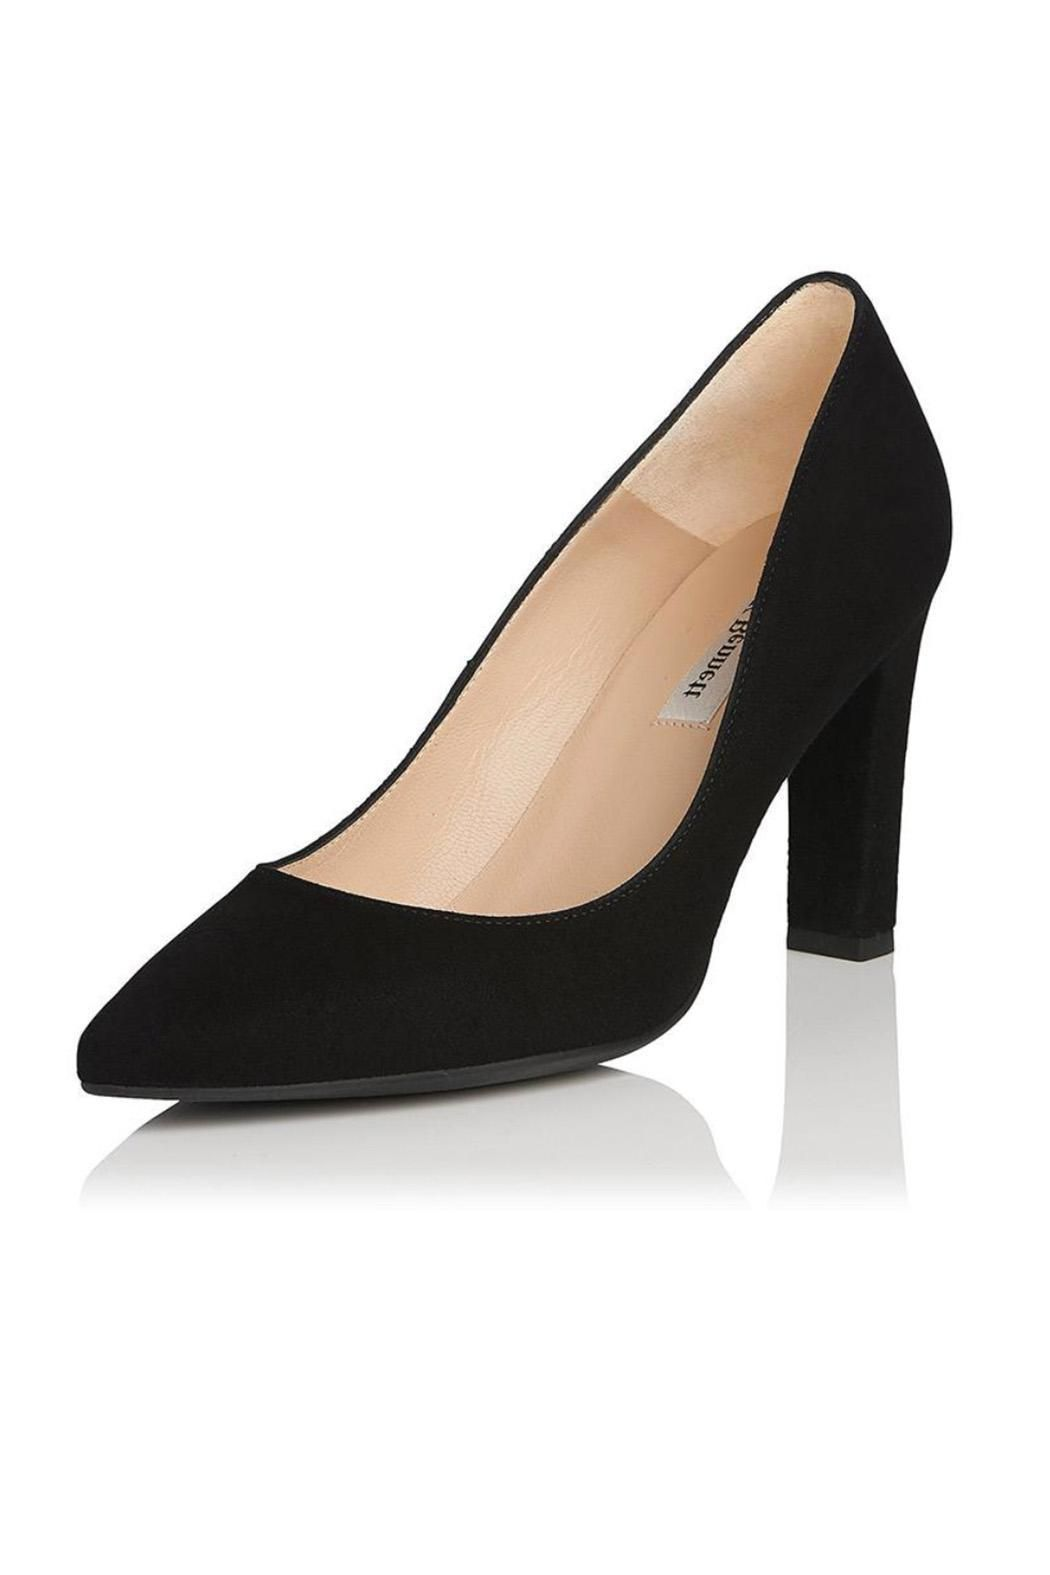 21945dc4935 Tess is a shoe built for style and comfort. The luxe suede body features a